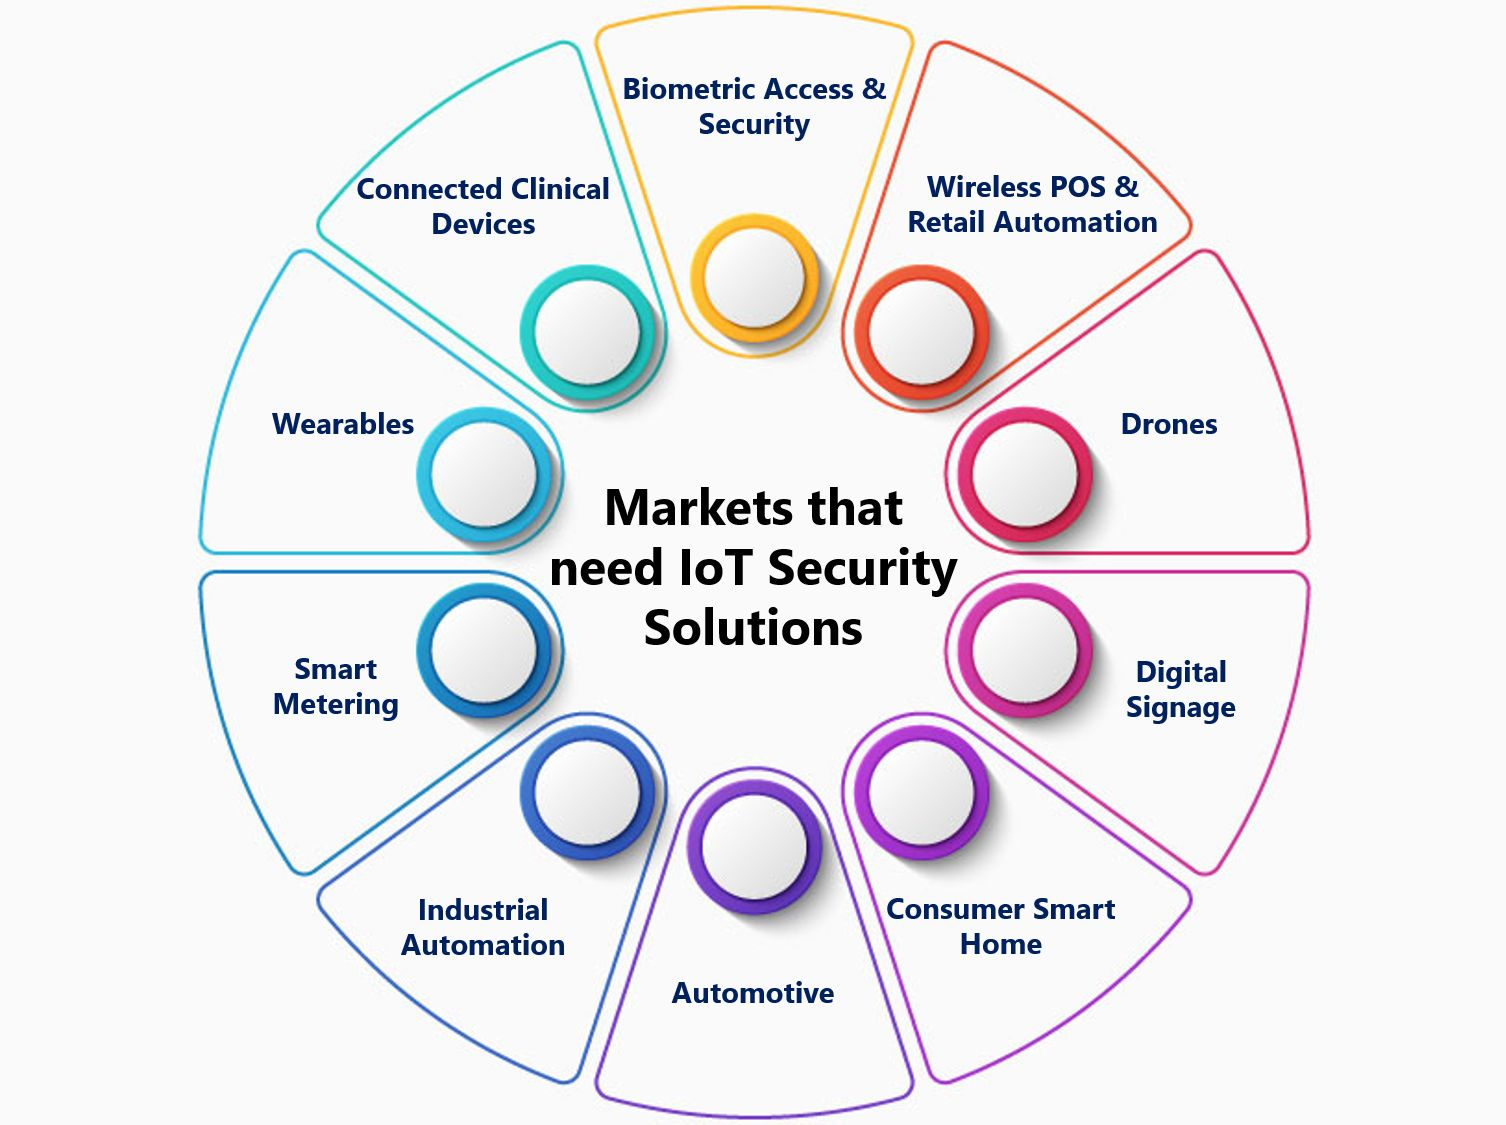 /the-emergence-of-iot-security-in-the-post-covid-19-world-sb1f3zmg feature image